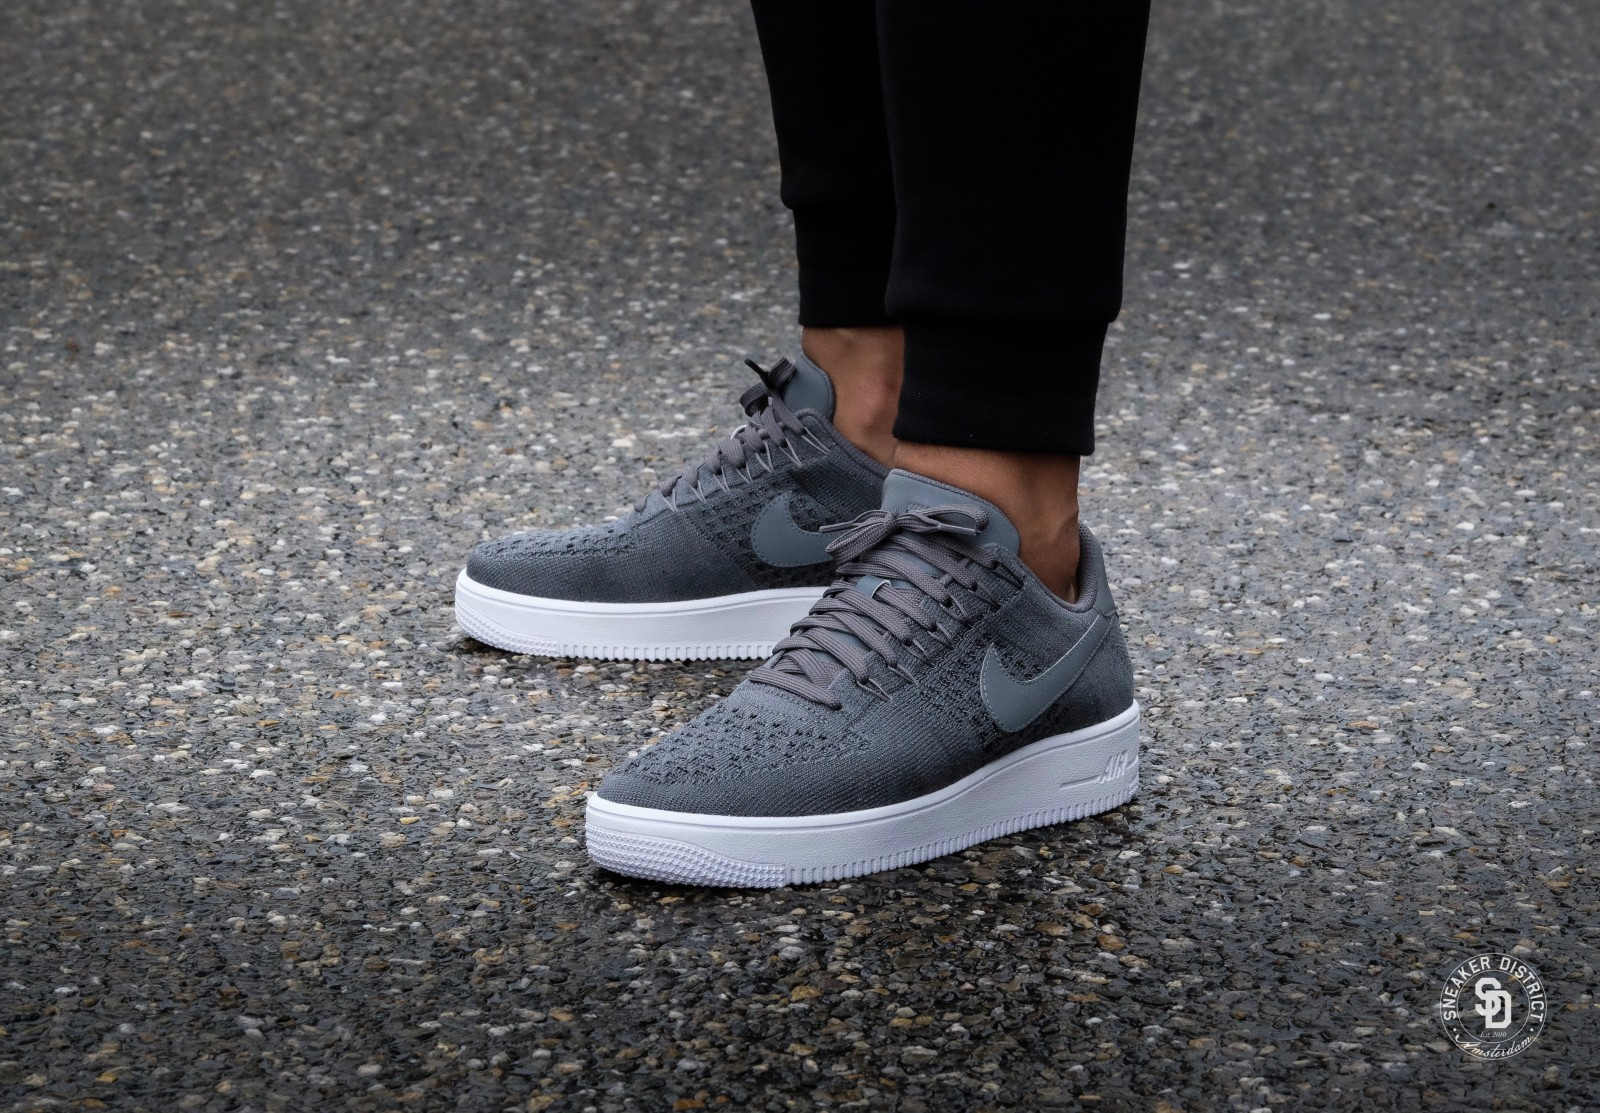 807618 200 Nike Air Force 1 Mid X Reigning Champ 3M GreyBlack For Sale